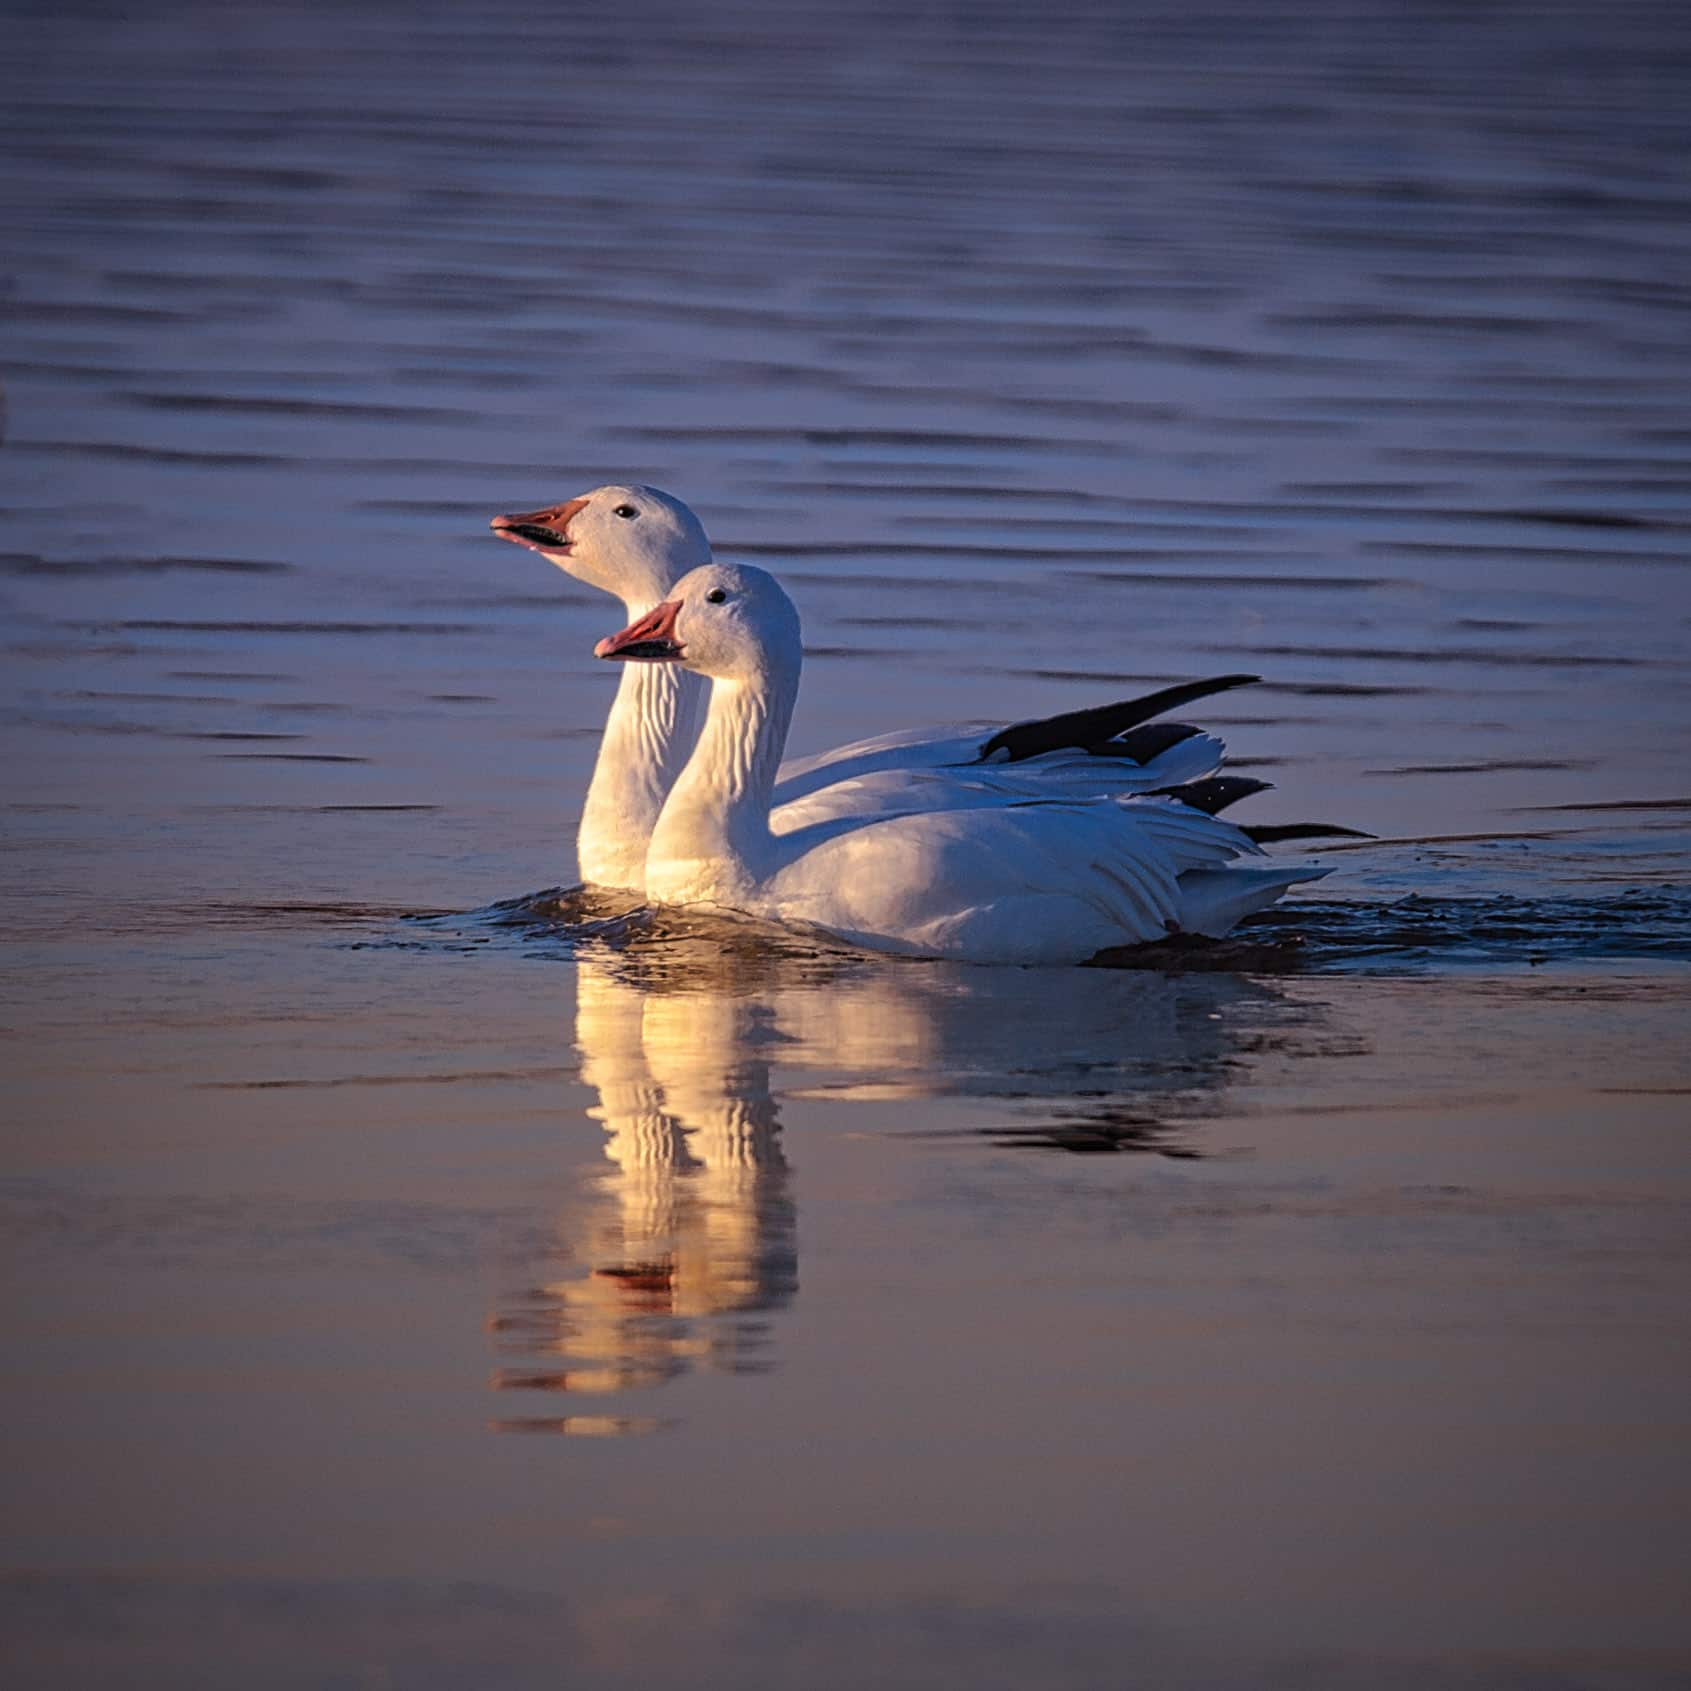 A pair of Snow Geese take a swim in a pond in Bosque del Apache National Wildlife Refuge near Socorro, New Mexico.